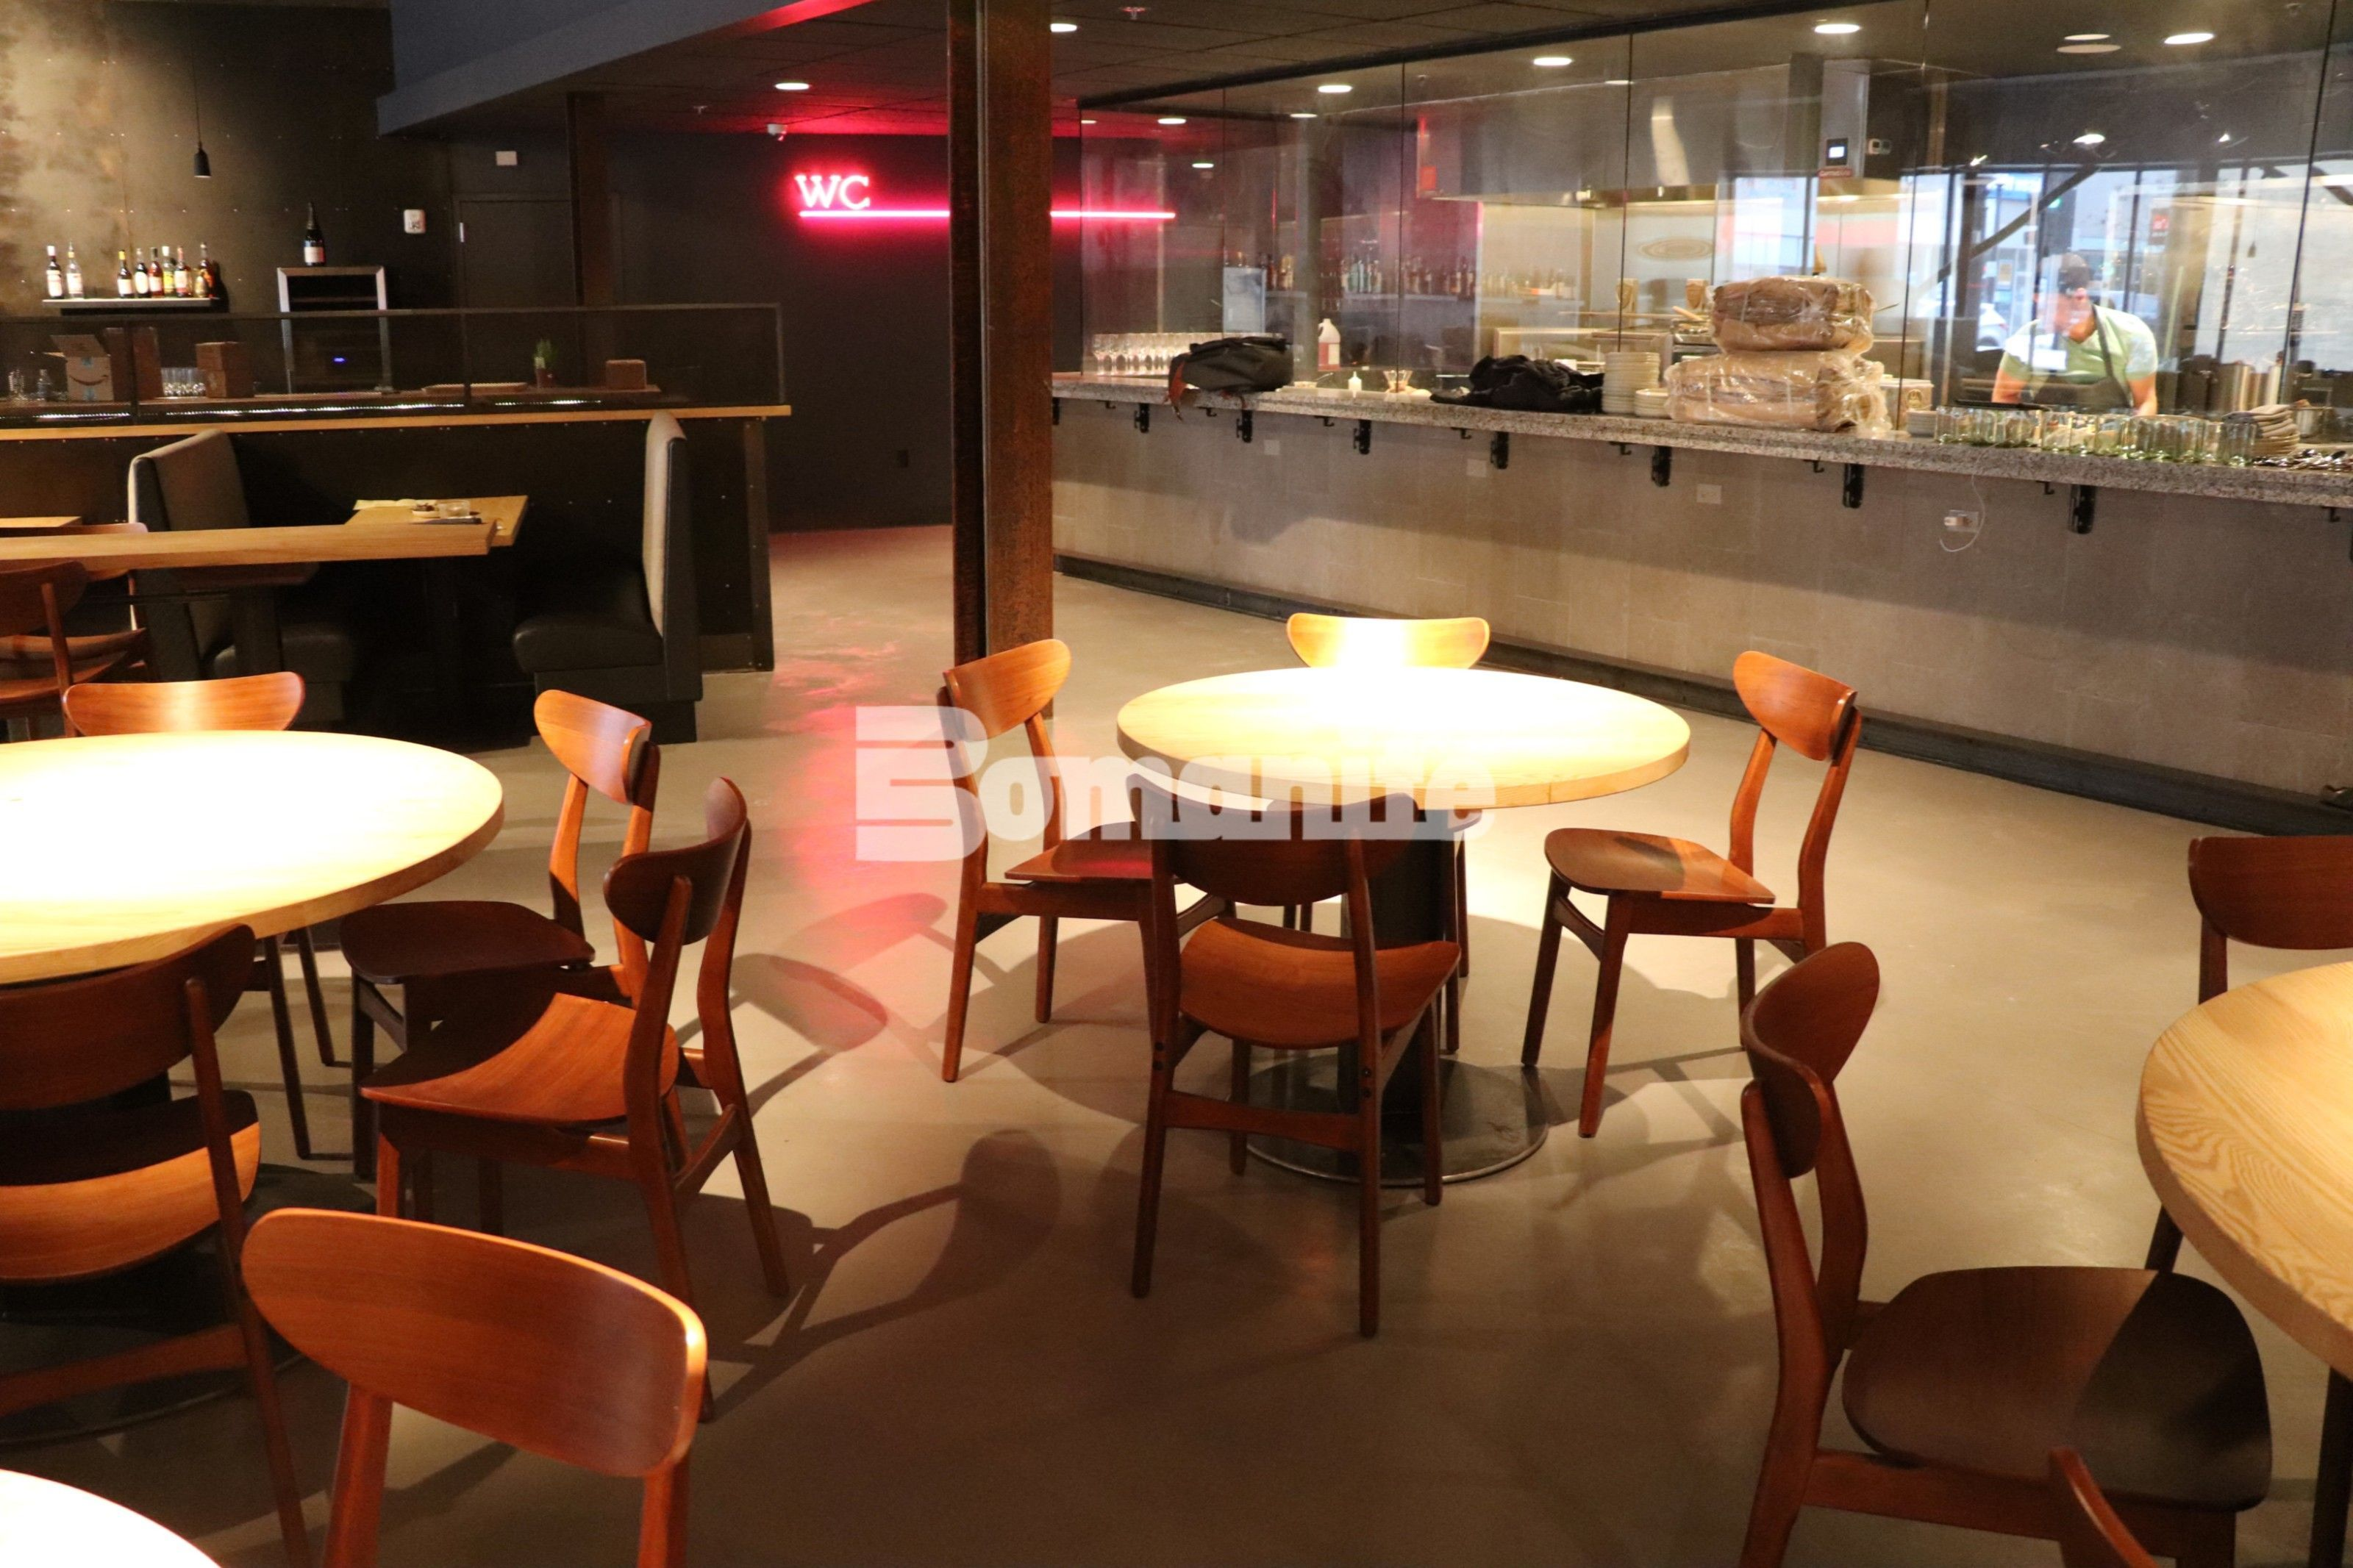 Elmwood Restaurant in the St. Louis suburb of Maplewood, MO, features both an open-yet-closed kitchen and Bomanite Topping Systems Micro Top decorative concrete flooring installed by Bomanite Licensee Mussleman and Hall.